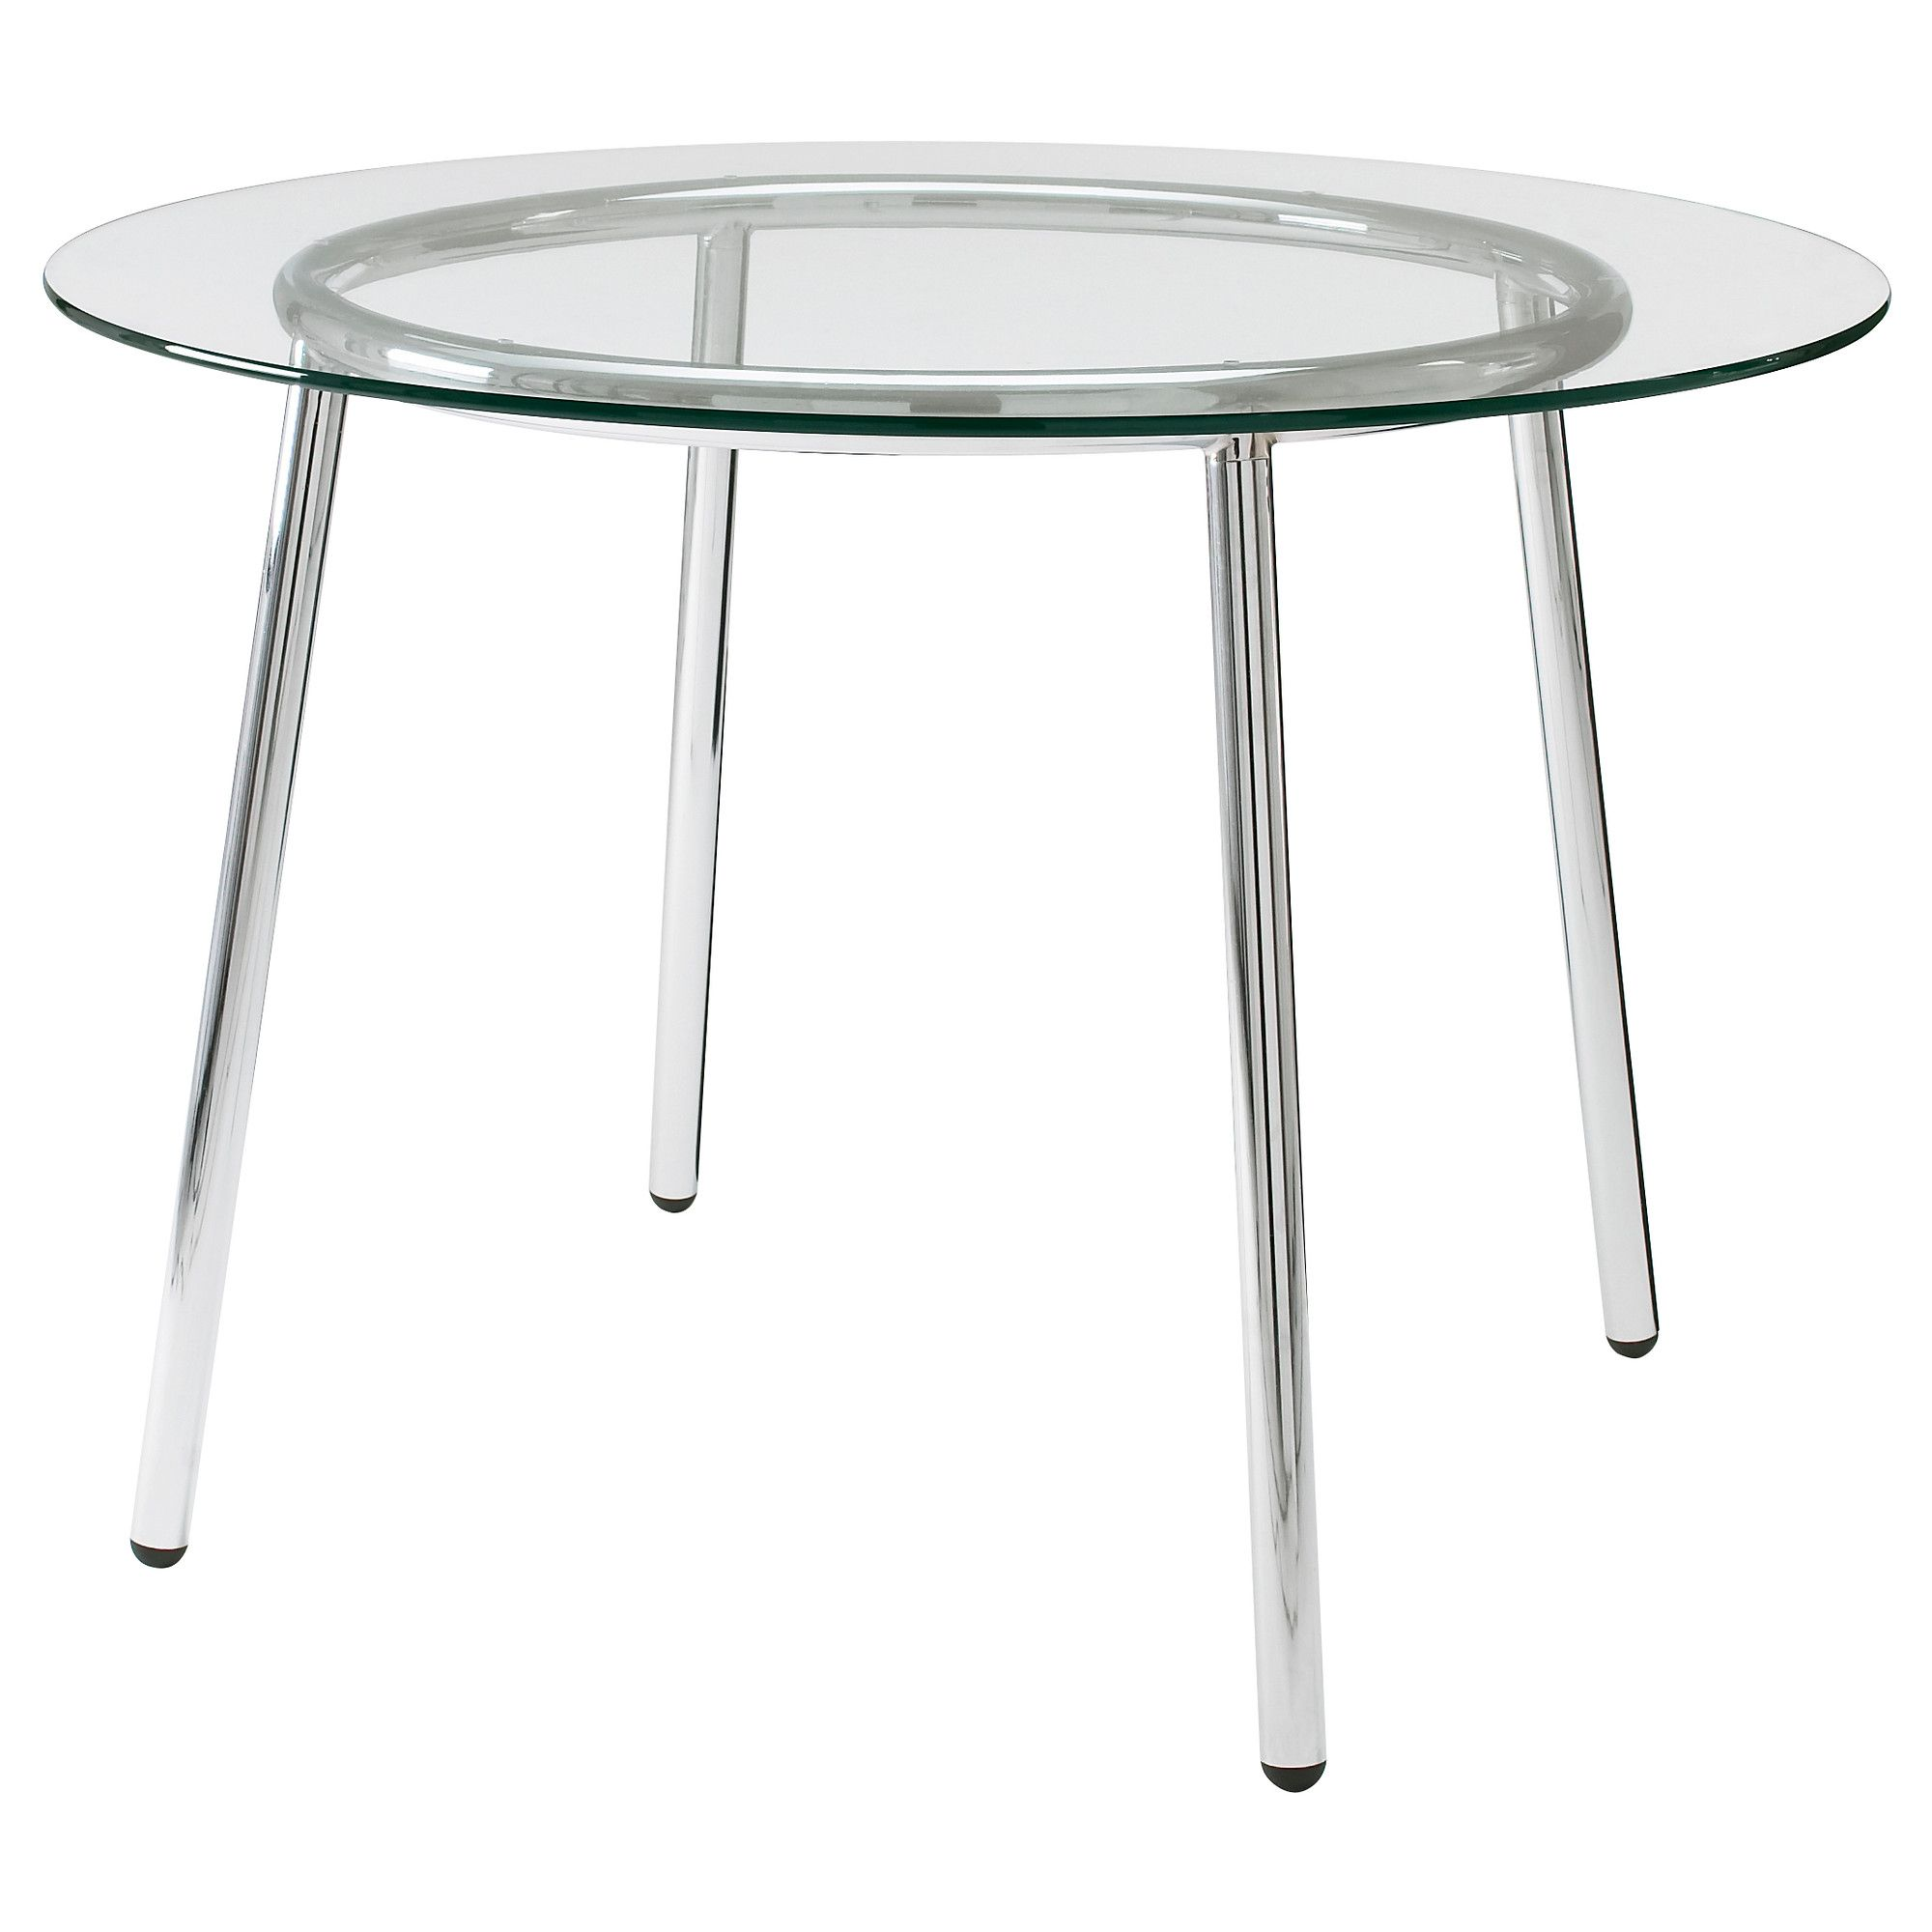 Ikea Us Furniture And Home Furnishings Glass Round Dining Table Round Glass Table Round Dining Table Modern